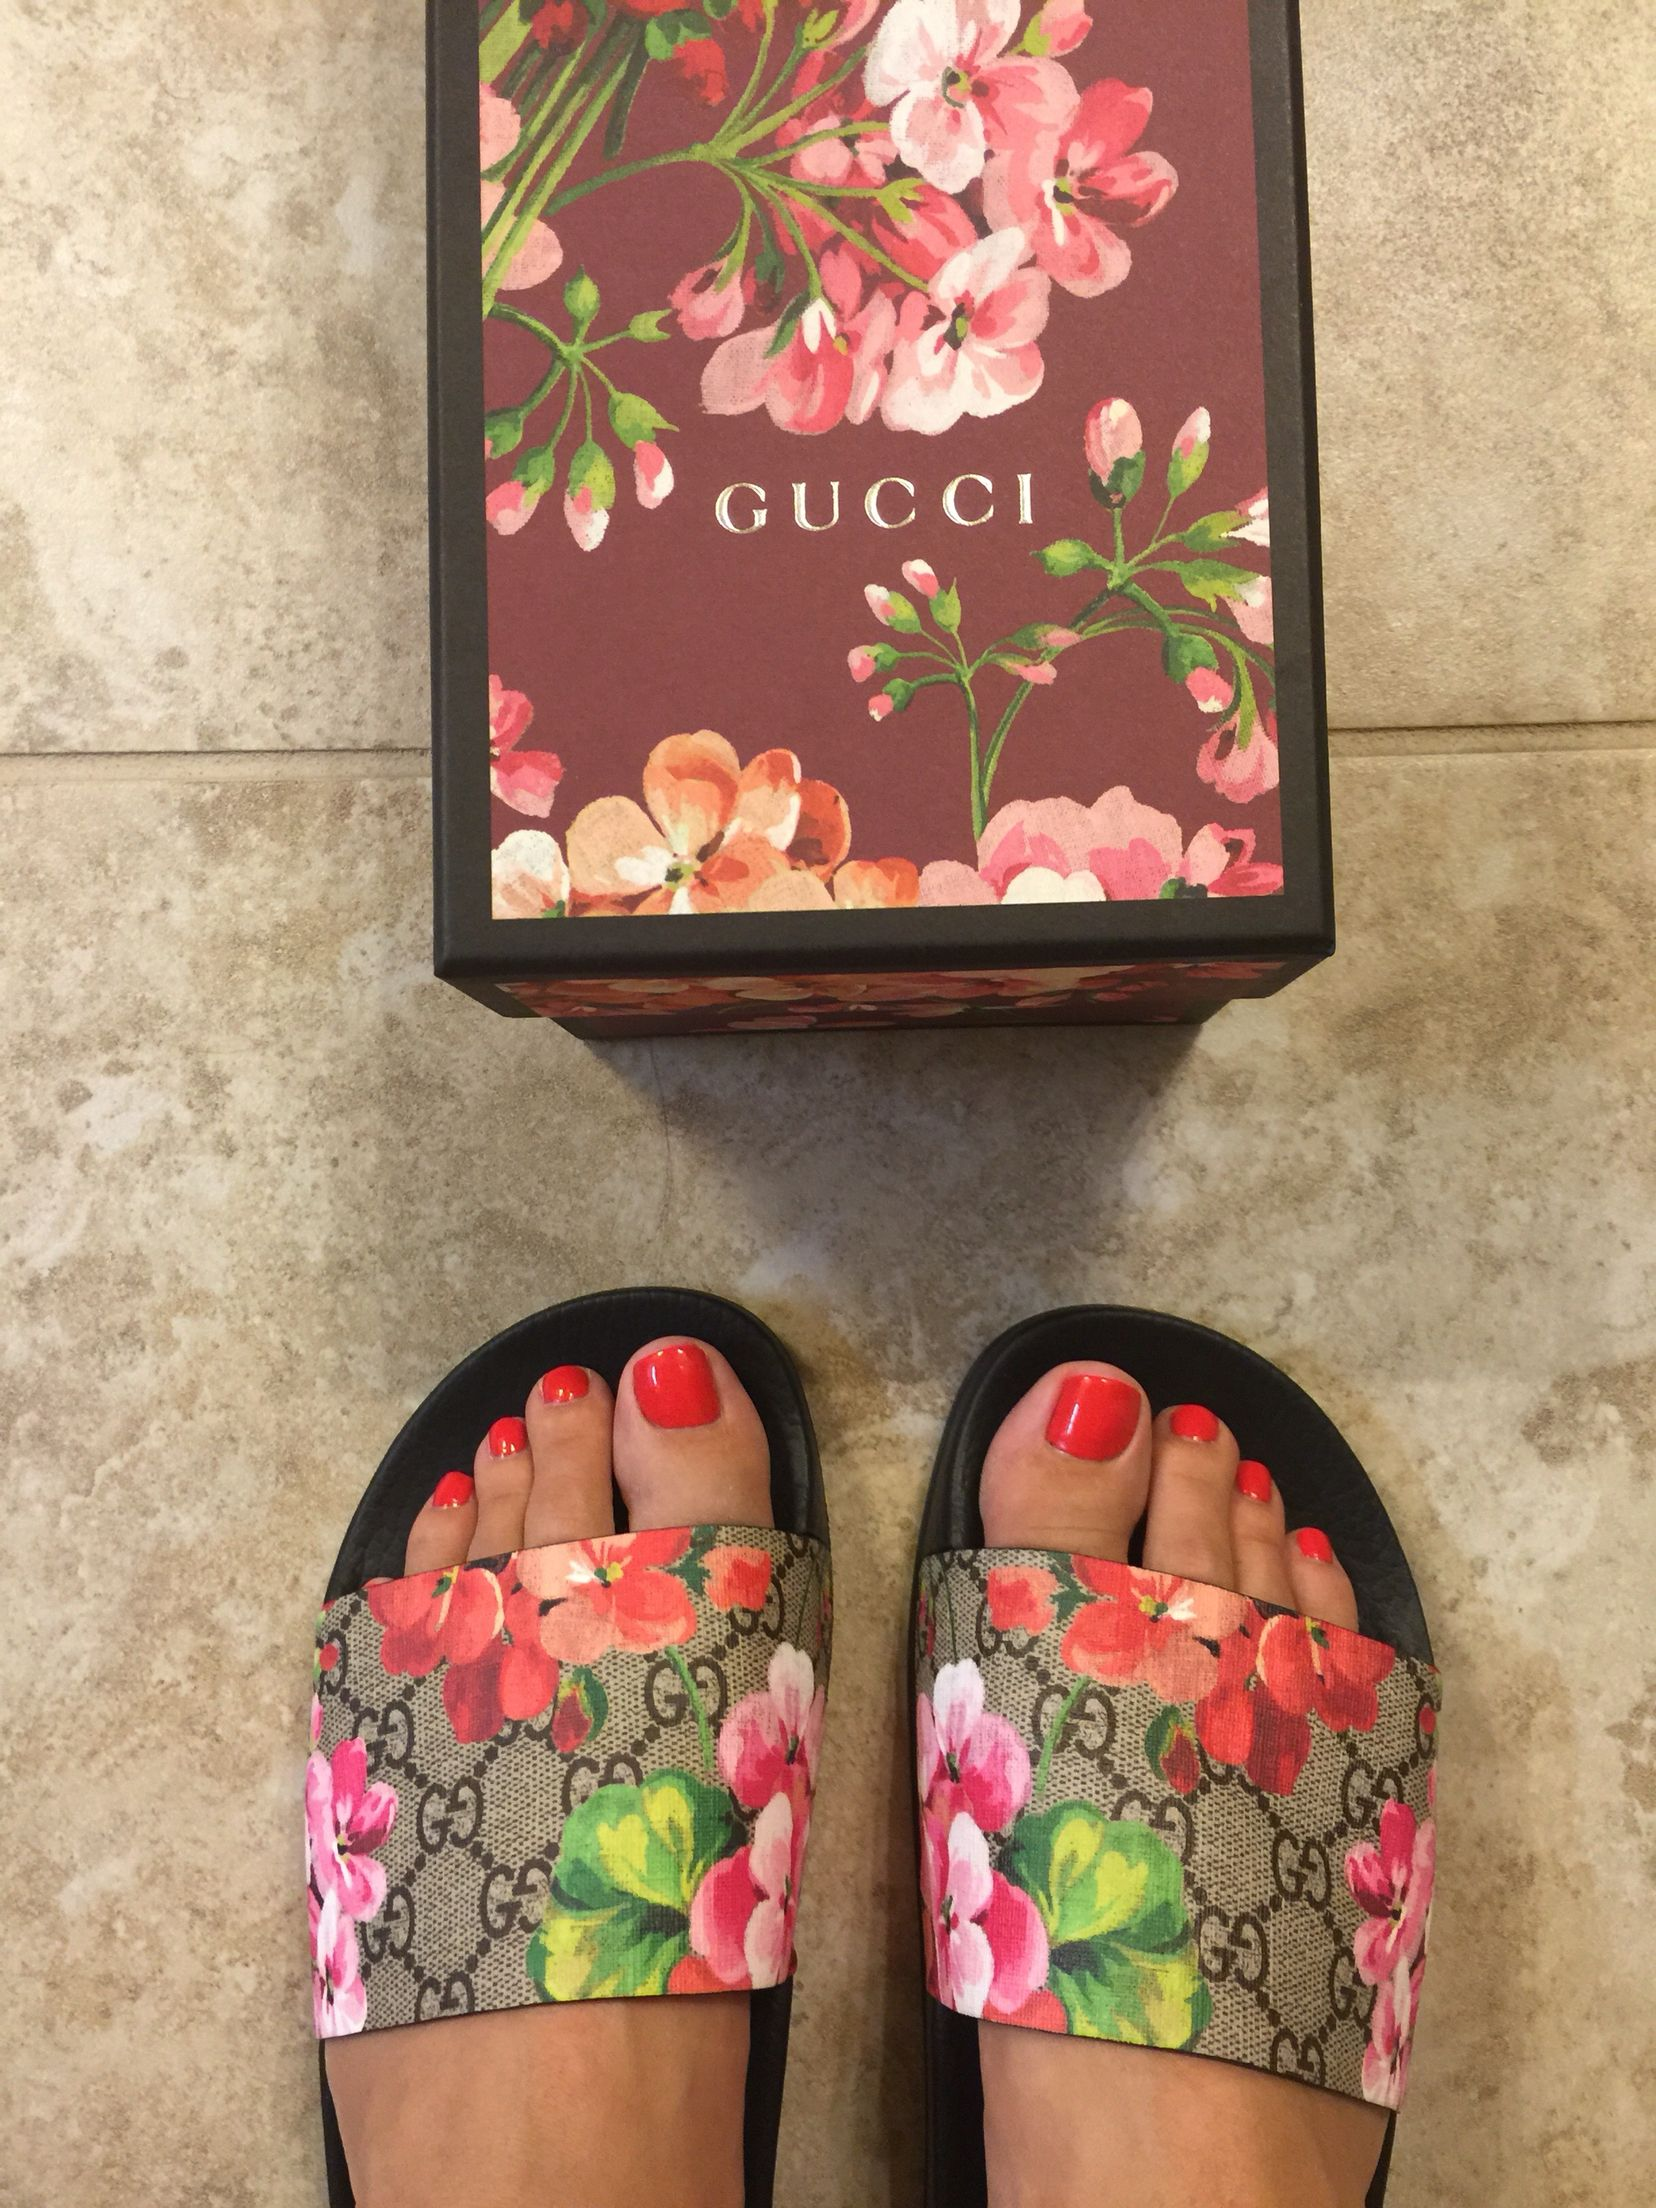 37fbc807a ... Blooms Supreme slide sandal by Gucci. Gucci slides